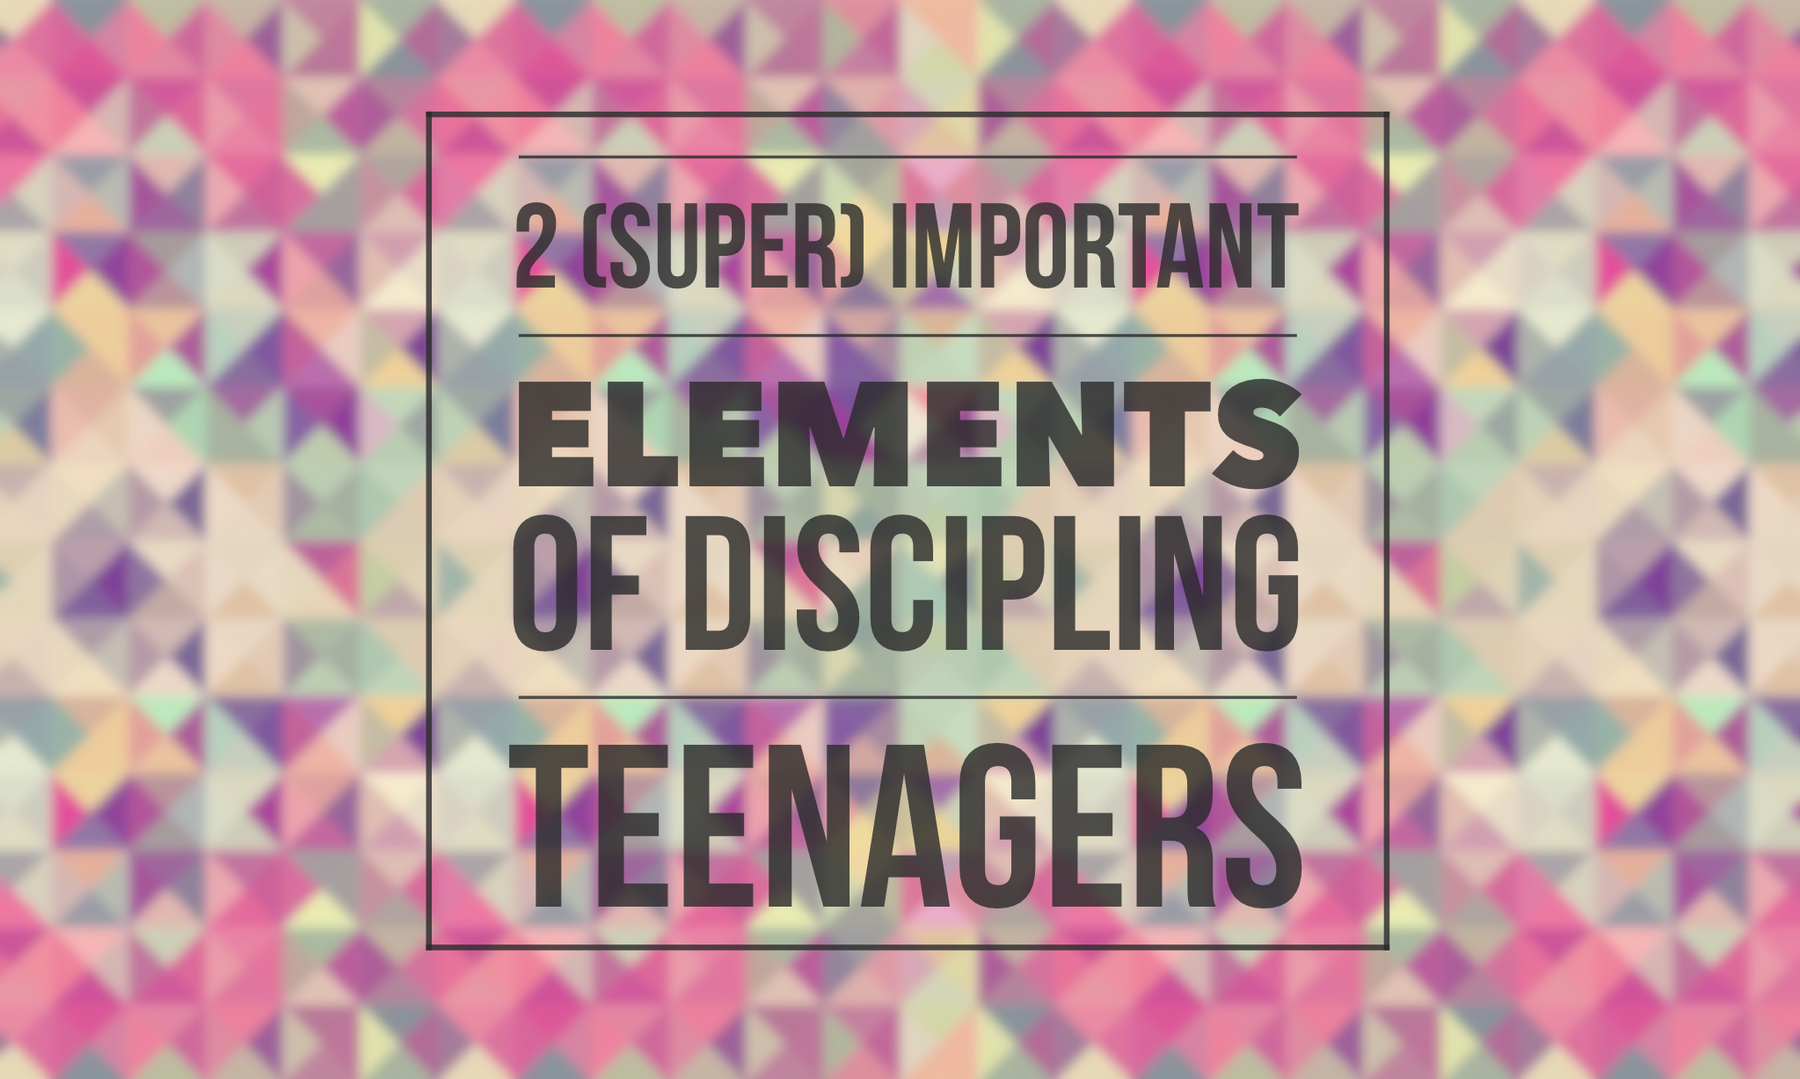 Two (Super) Important Elements of Discipling Teenagers